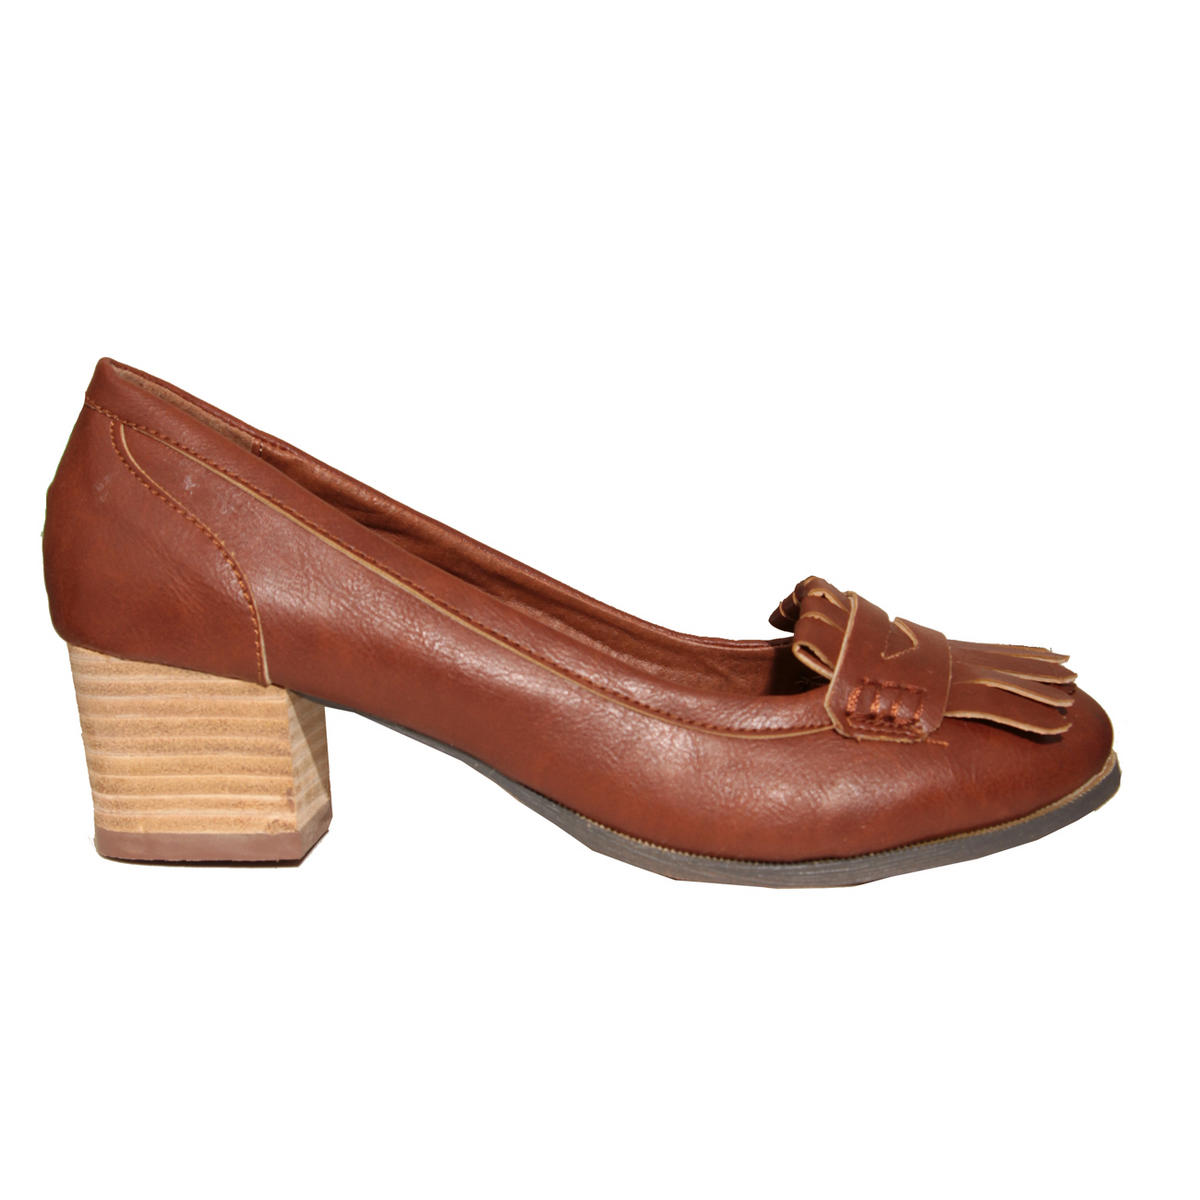 Tan Heeled Loafer Shoe Preview